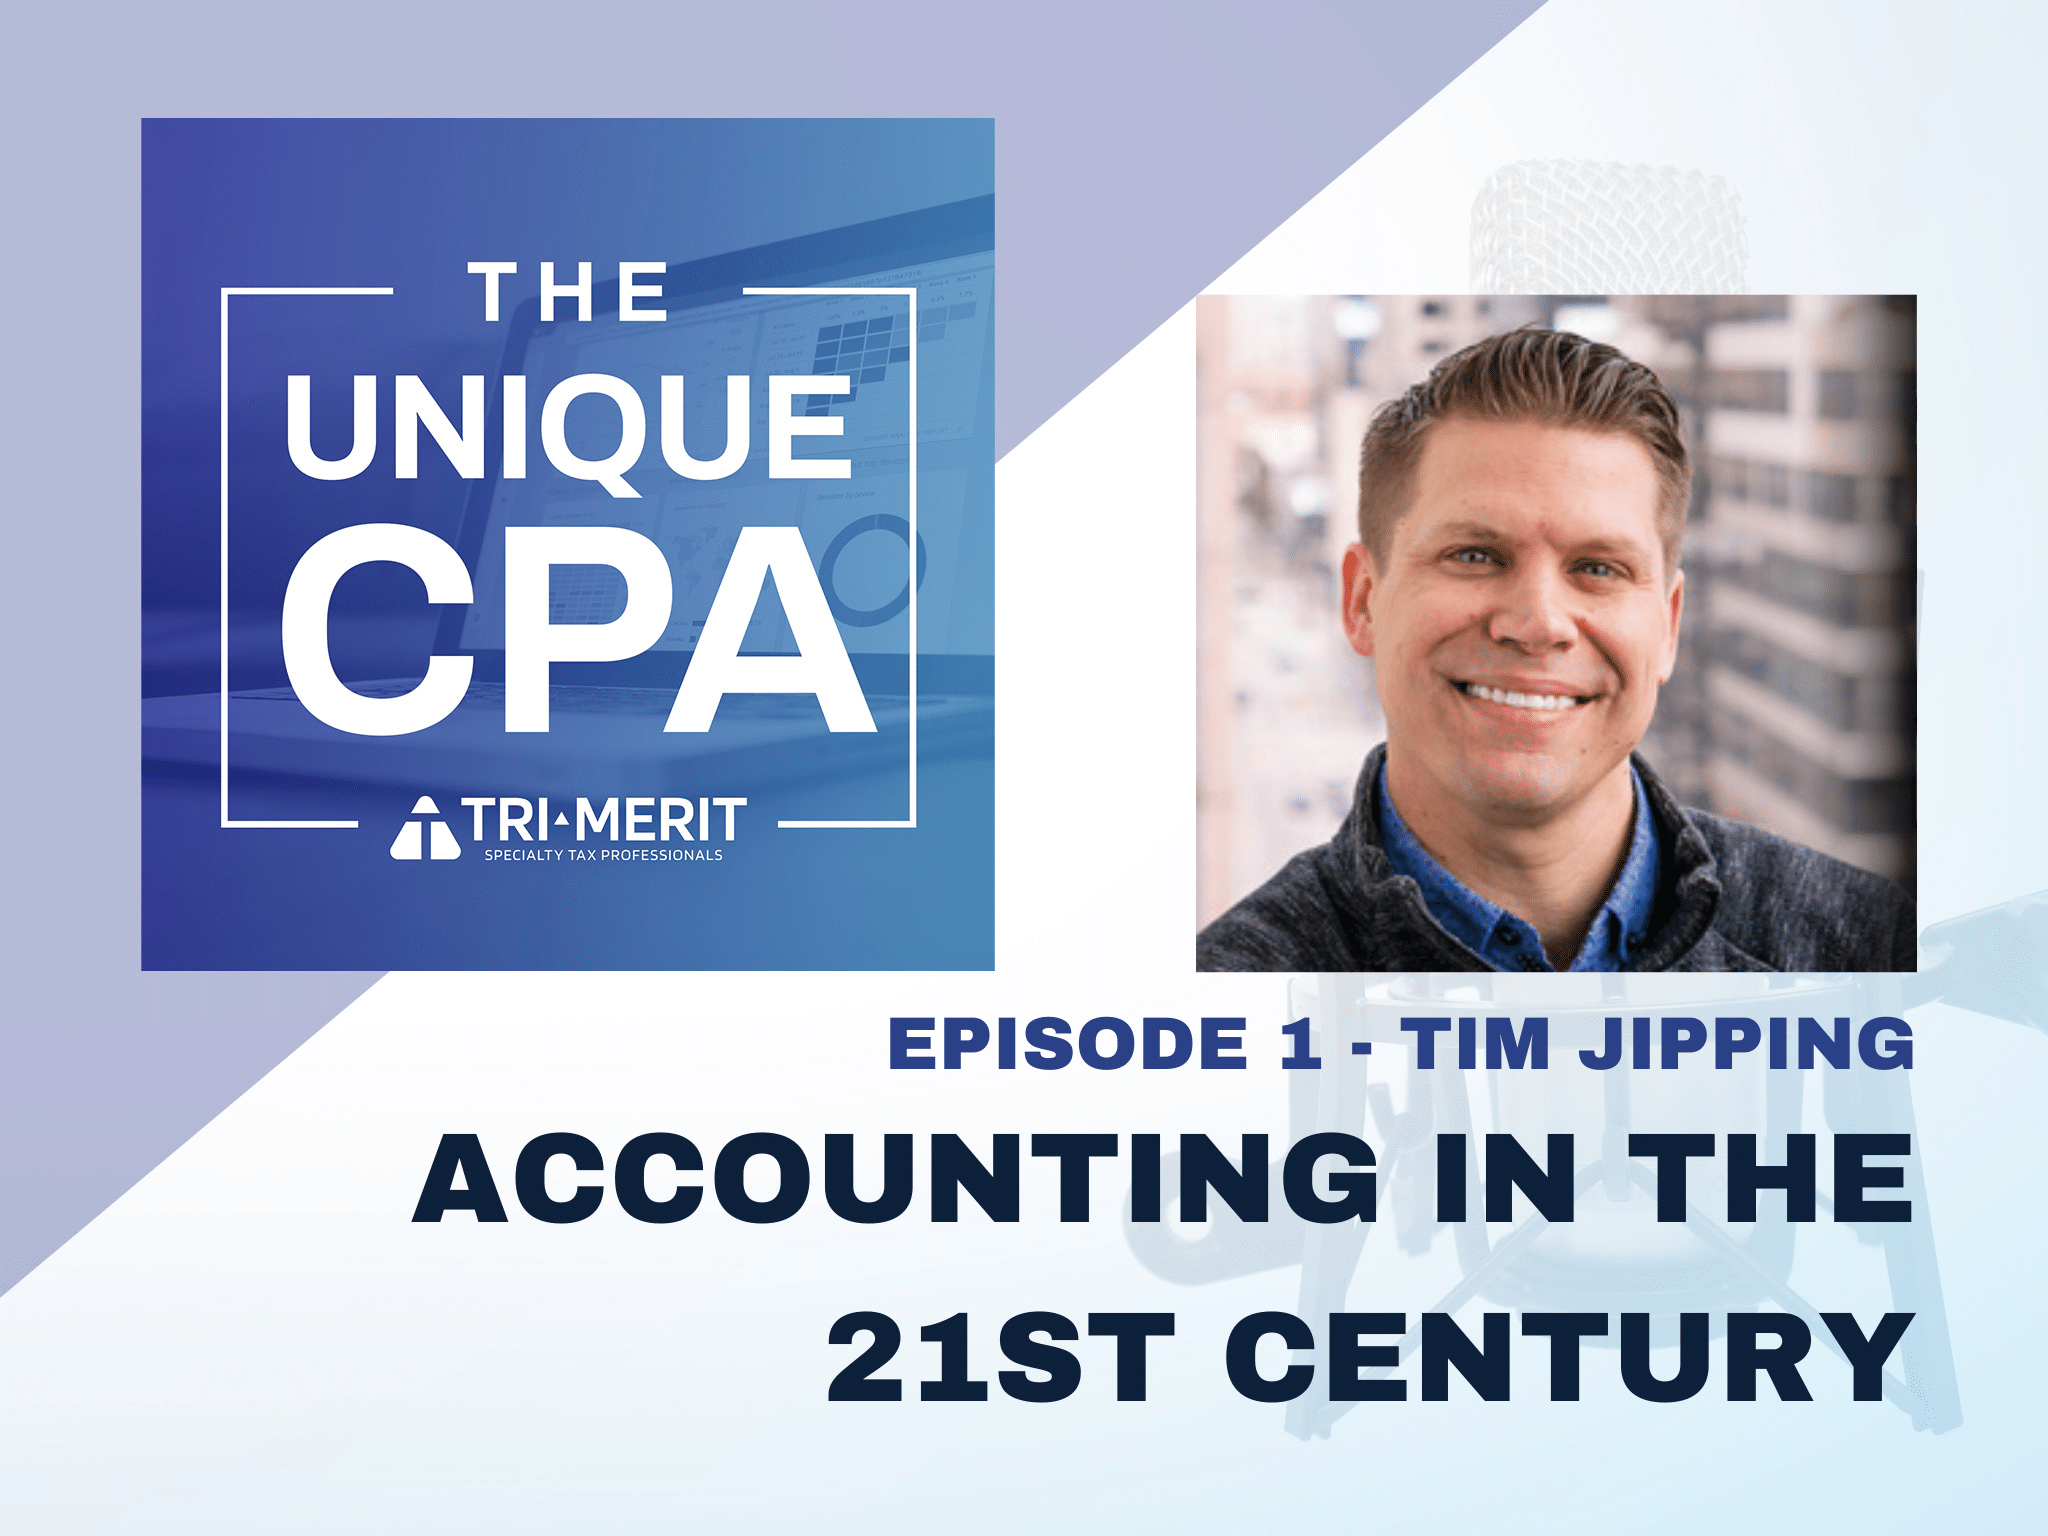 the unique cpa - Accounting in the 21st Century - Tri-Merit